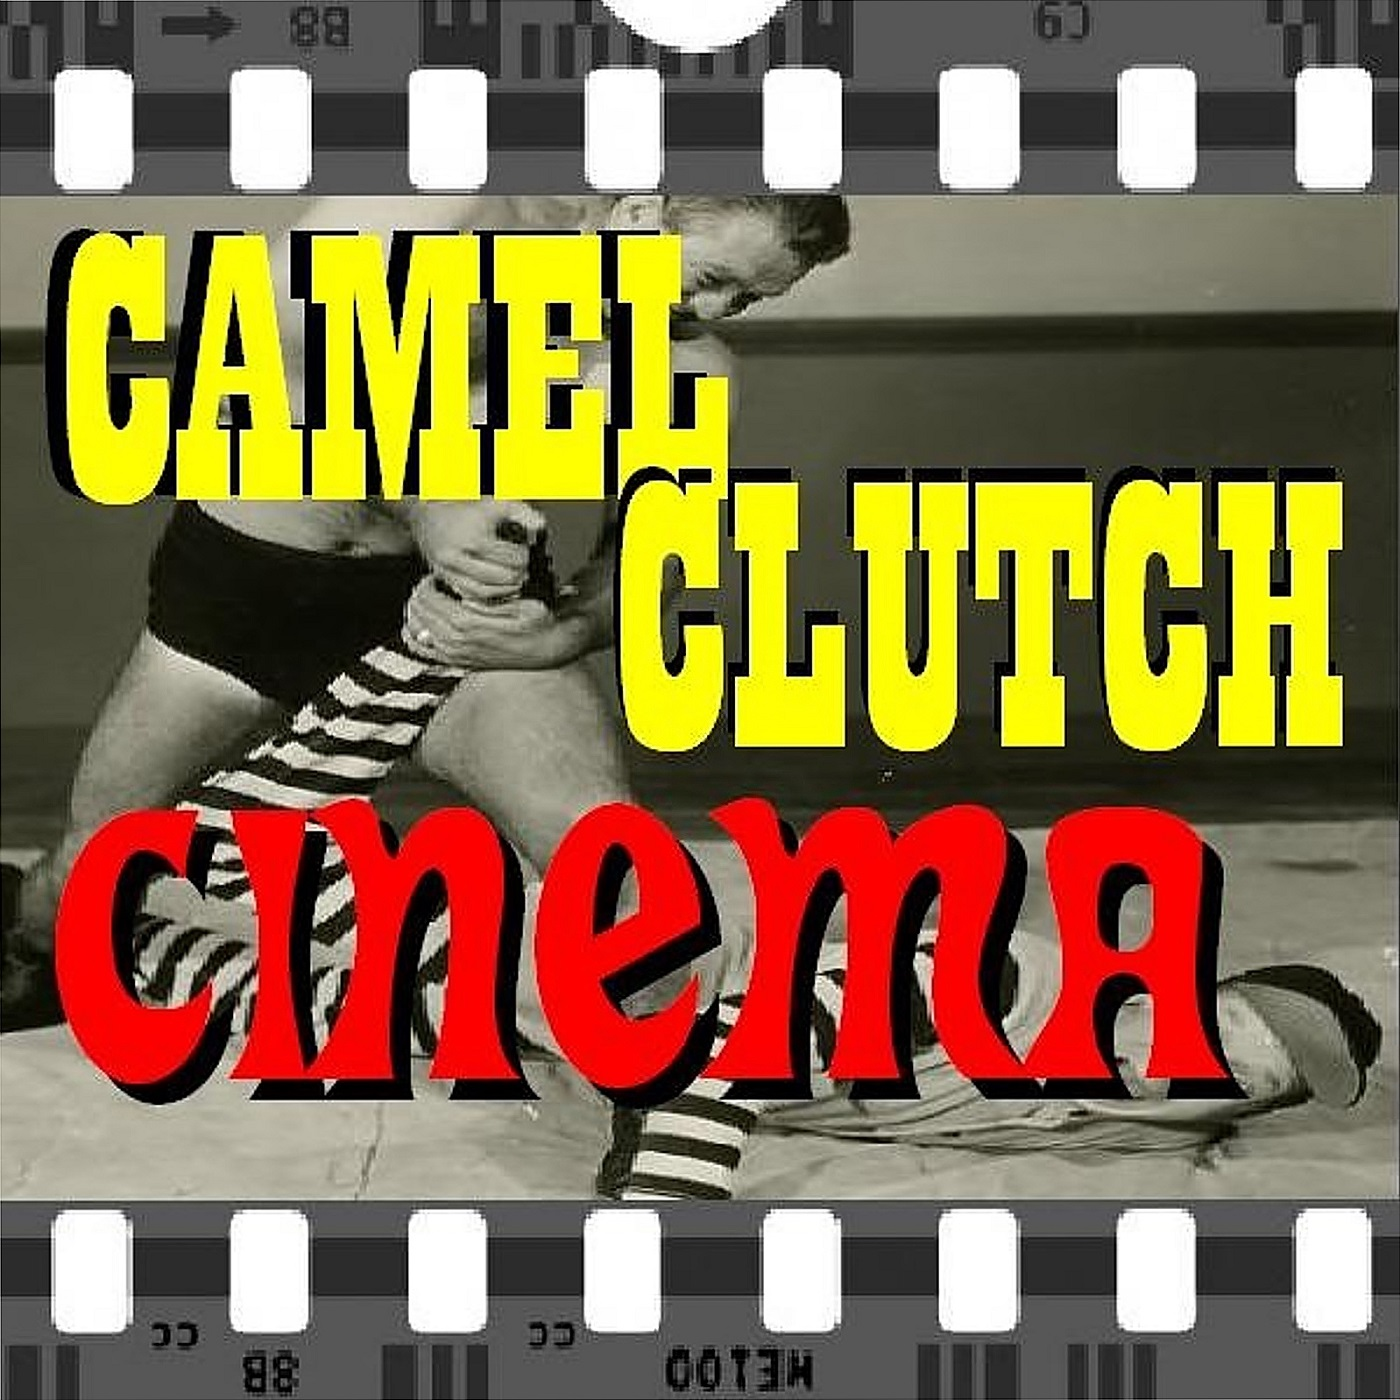 Camel Clutch Cinema